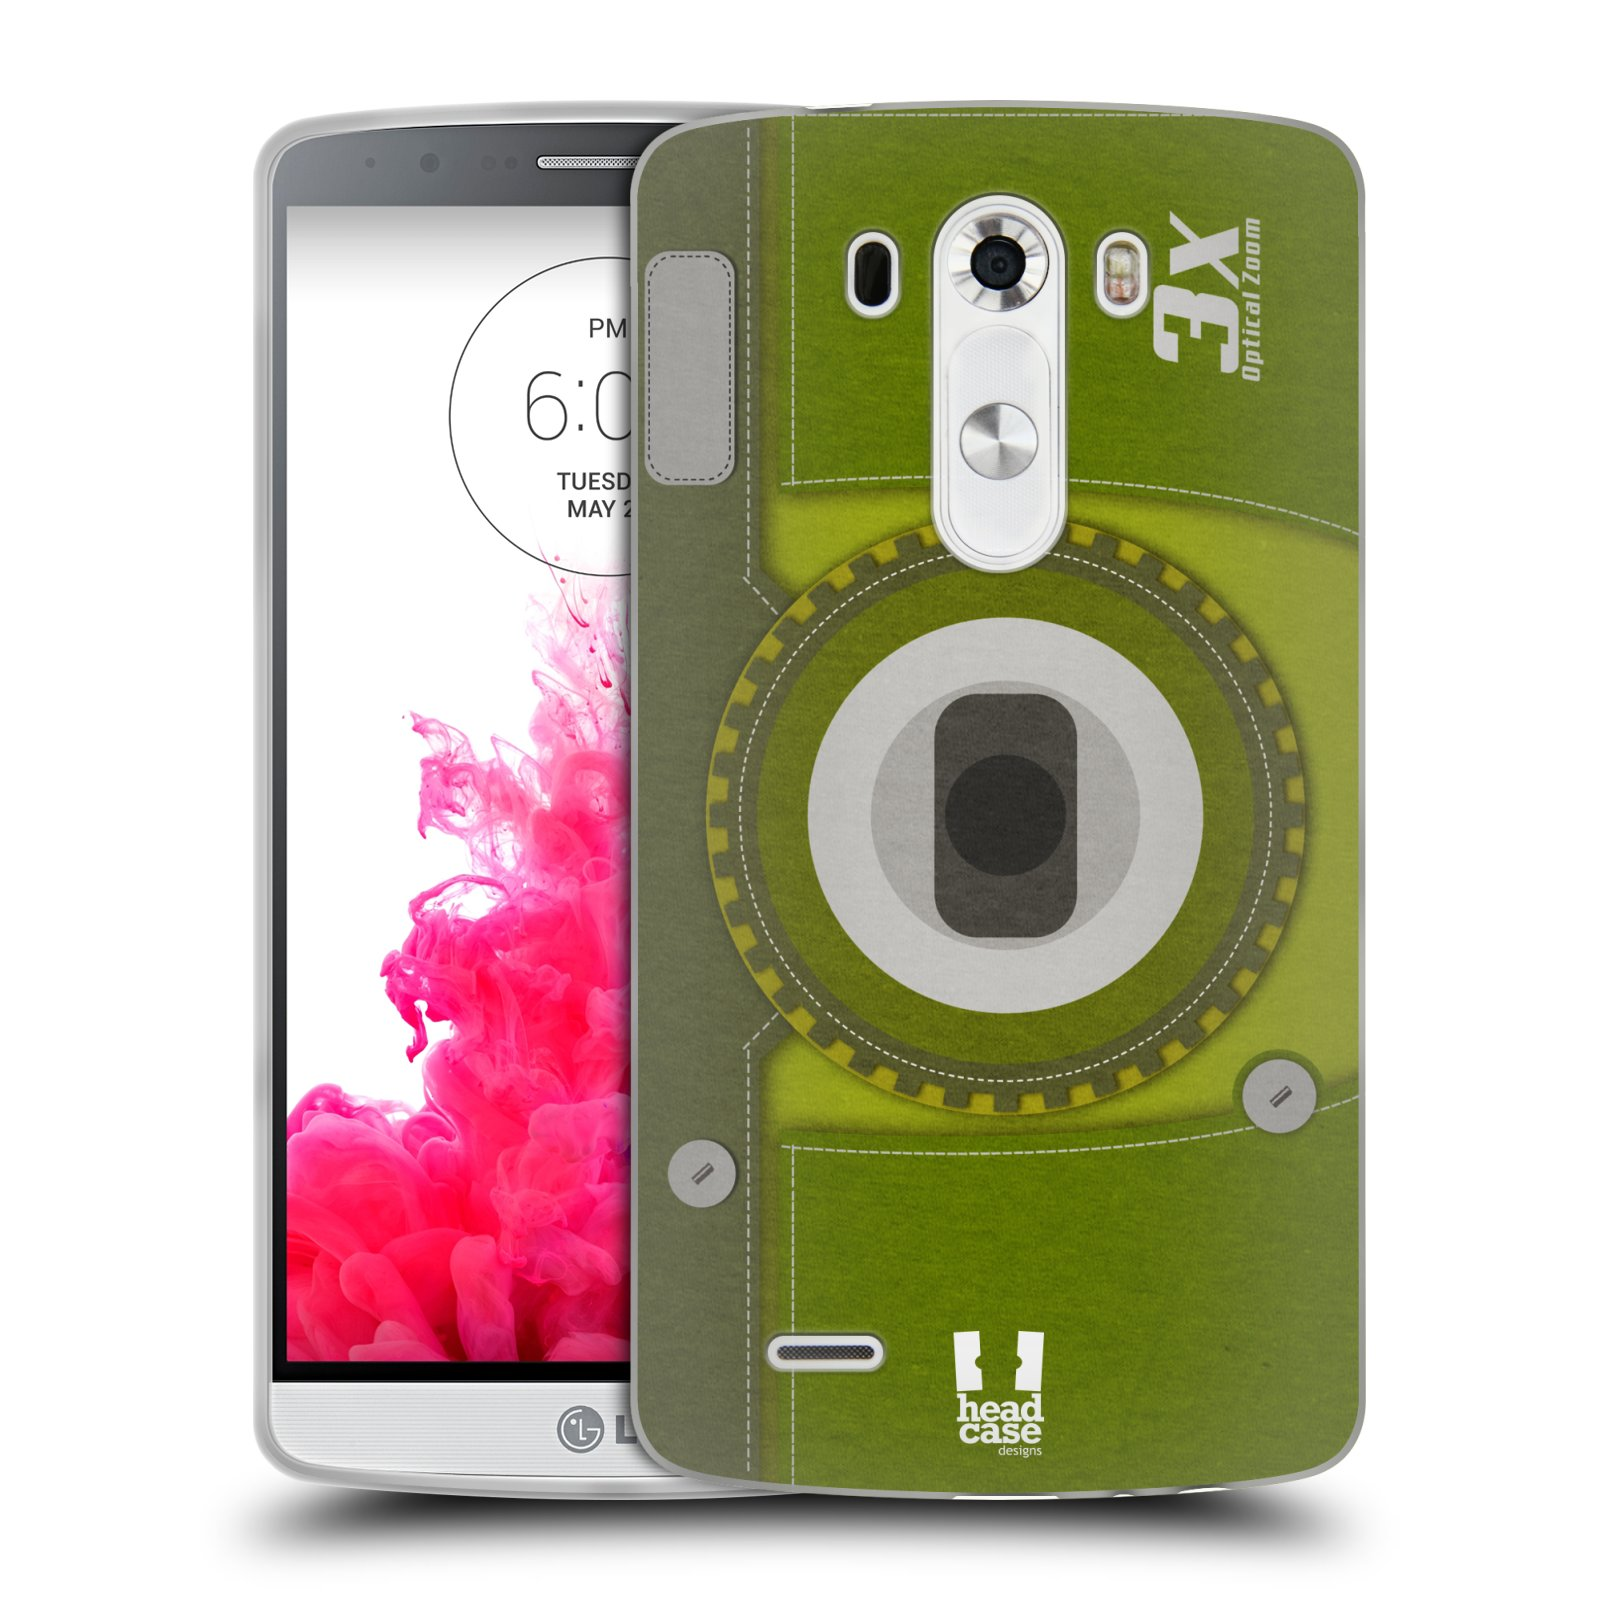 HEAD-CASE-DESIGNS-APPAREILS-PHOTO-ETUI-COQUE-EN-GEL-MOLLE-POUR-LG-G3